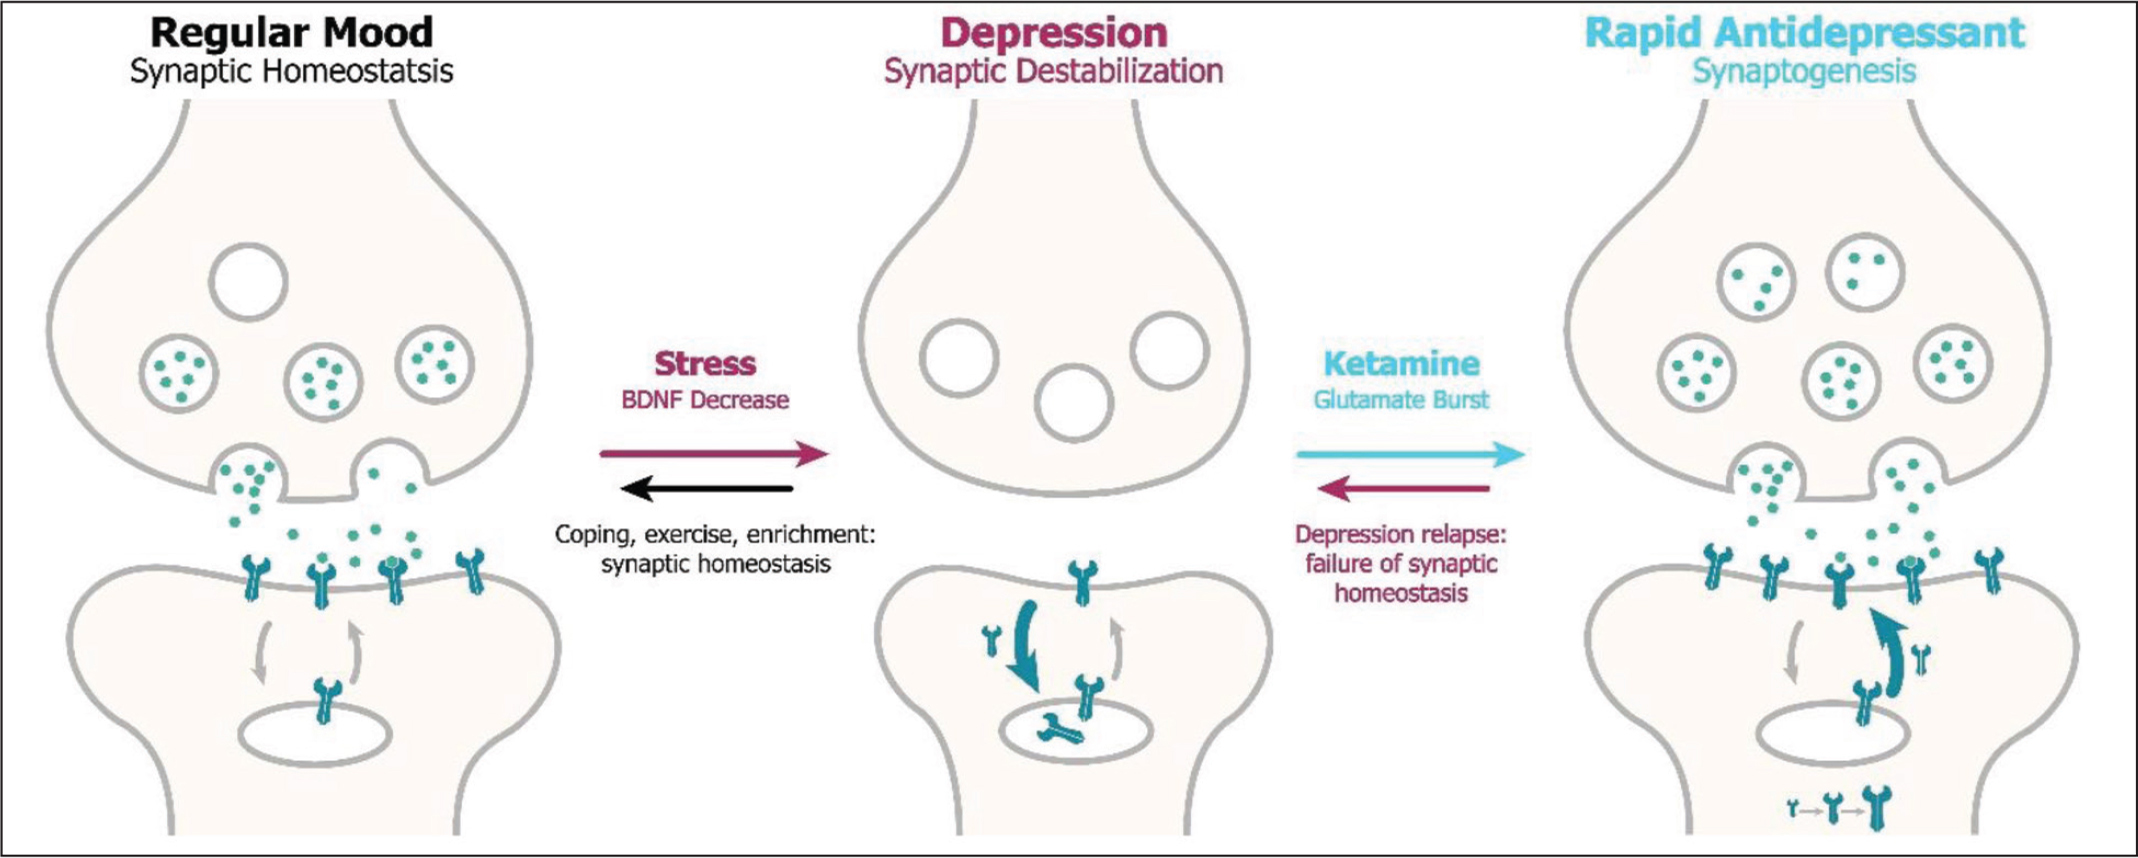 Effects of depression and ketamine on synaptic glutamate release and its subsequent binding to AMPA (alpha-amino-3-hydroxy-5-methyl-4-isoxazolepropionic) receptors leading to synaptogenesis in the prefrontal cortex. BDNF, brain-derived neurotrophic factor. Adapted from Abdallah et al.30